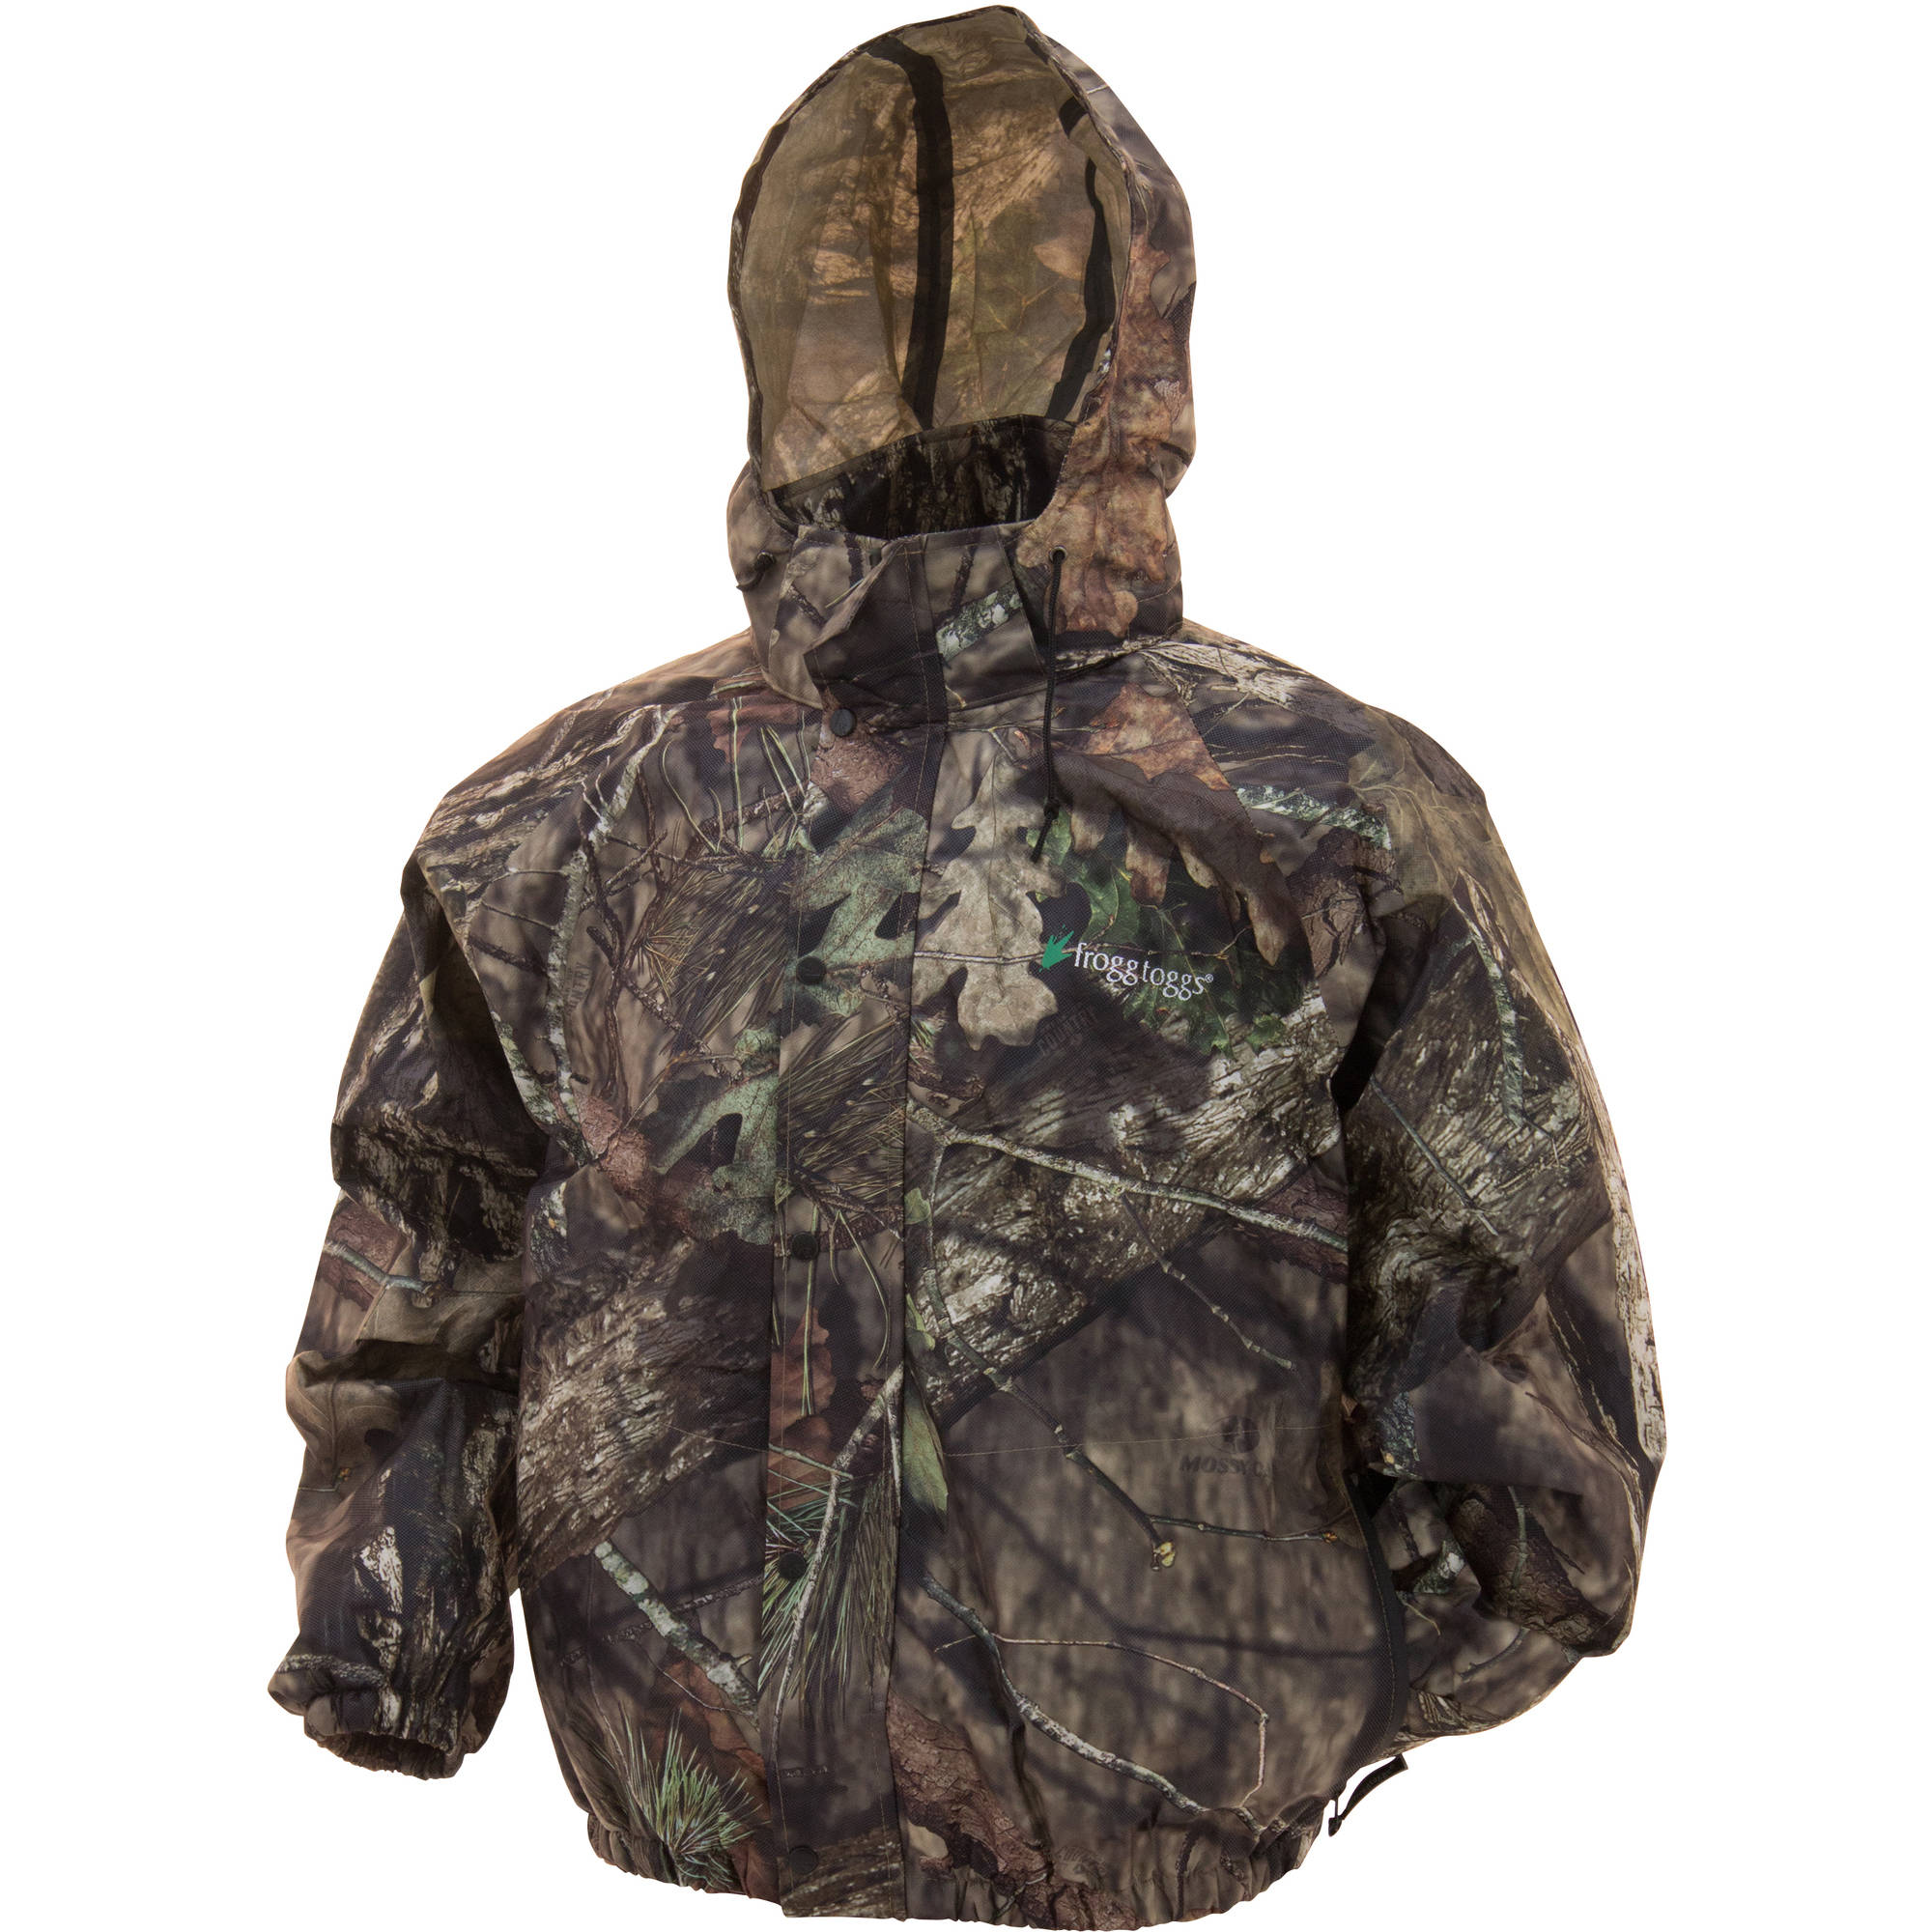 Frogg Toggs Pro Action Camo Jacket, Mossy Oak Break Up Country